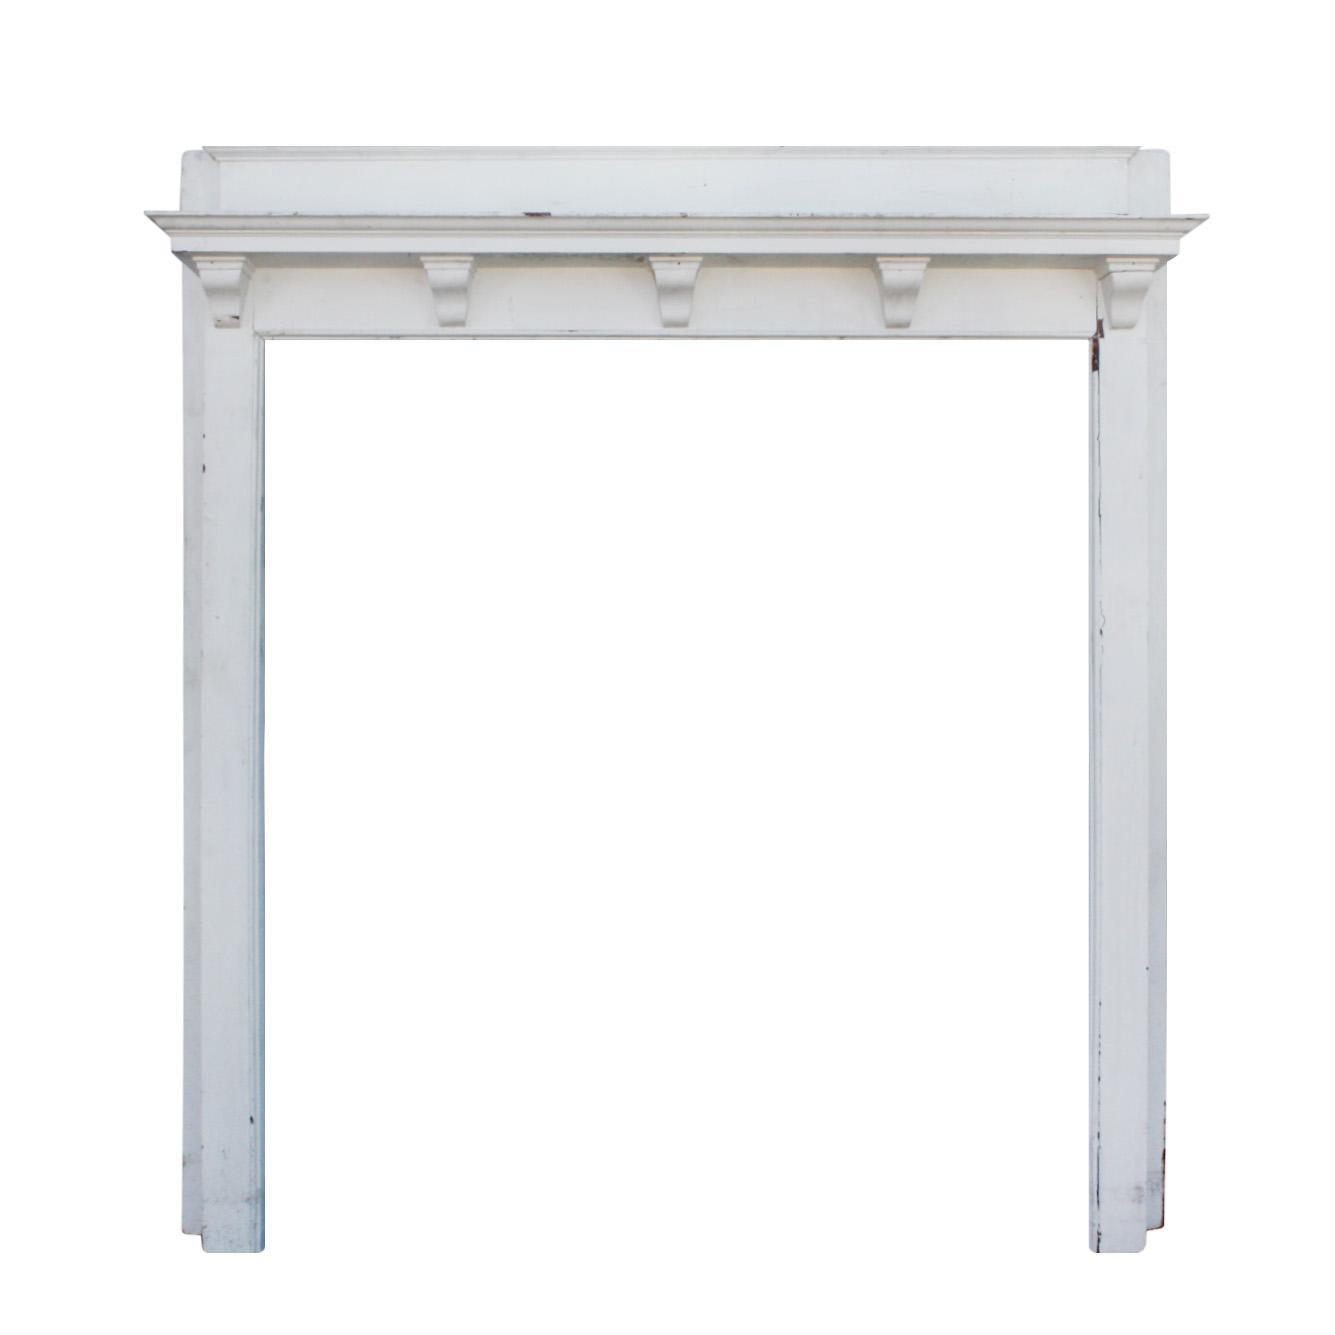 Understated Antique Fireplace Mantel, Robert Mitchell Furniture Co.